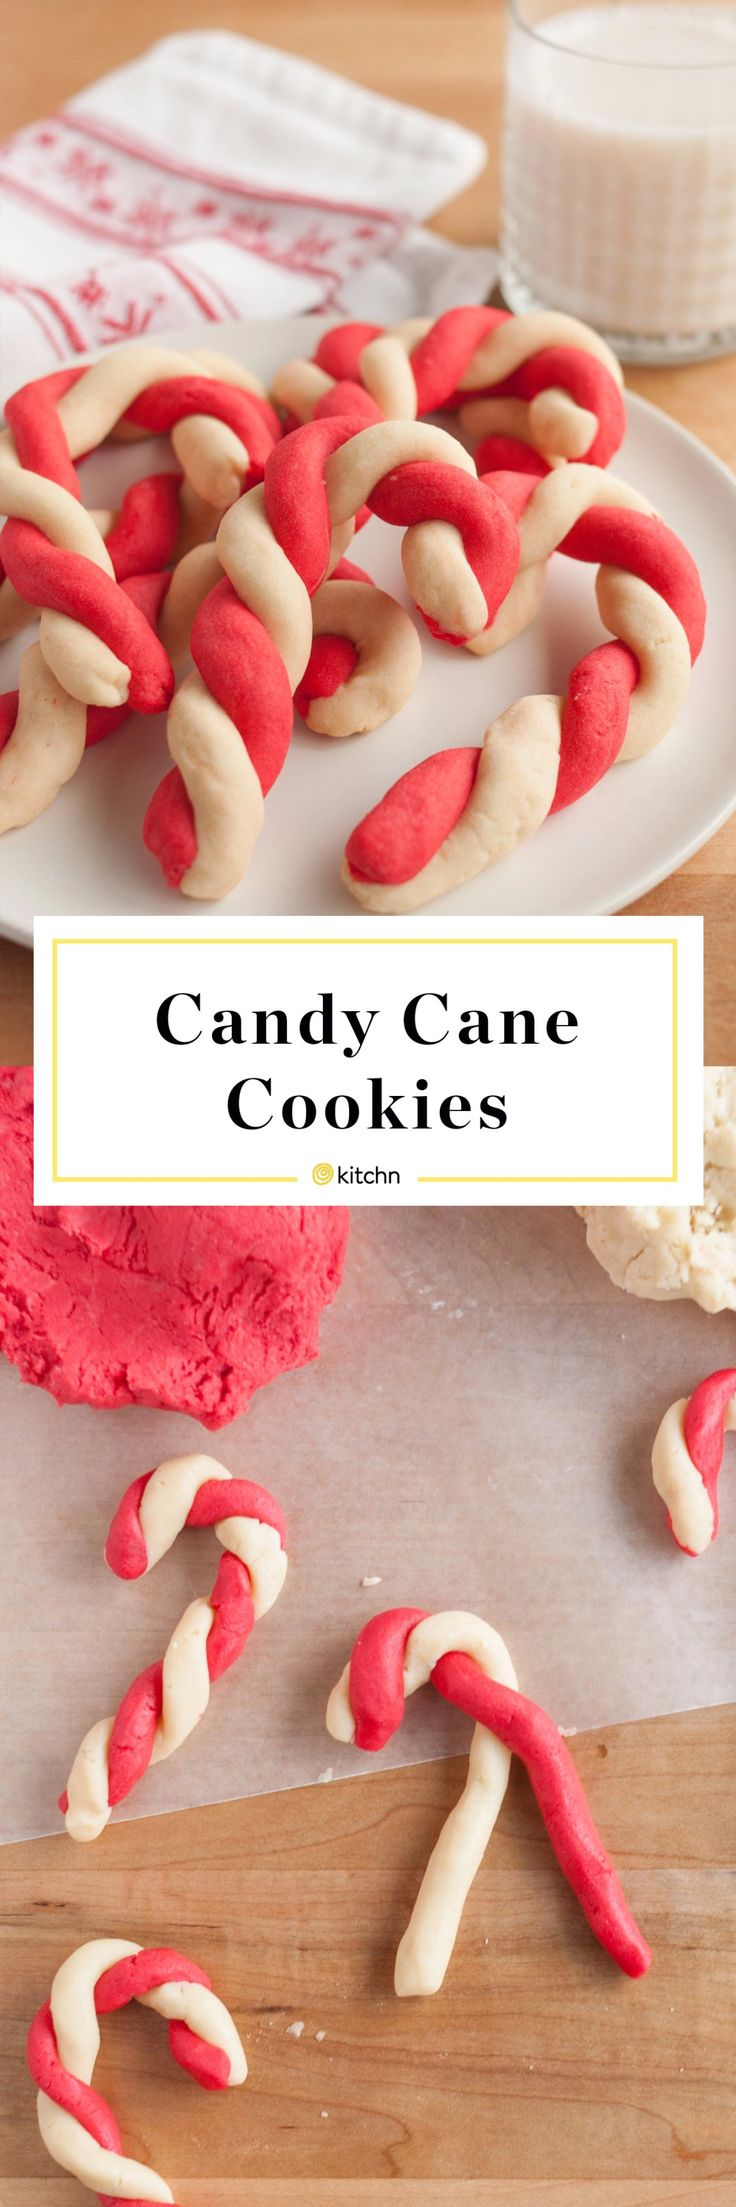 Best Candy Cane Cookies Recipe. These simple and easy cookies are perfect if you're looking for recipes and ideas for holiday baking. One of the most popular Christmas or Xmas treats to bake with kids.